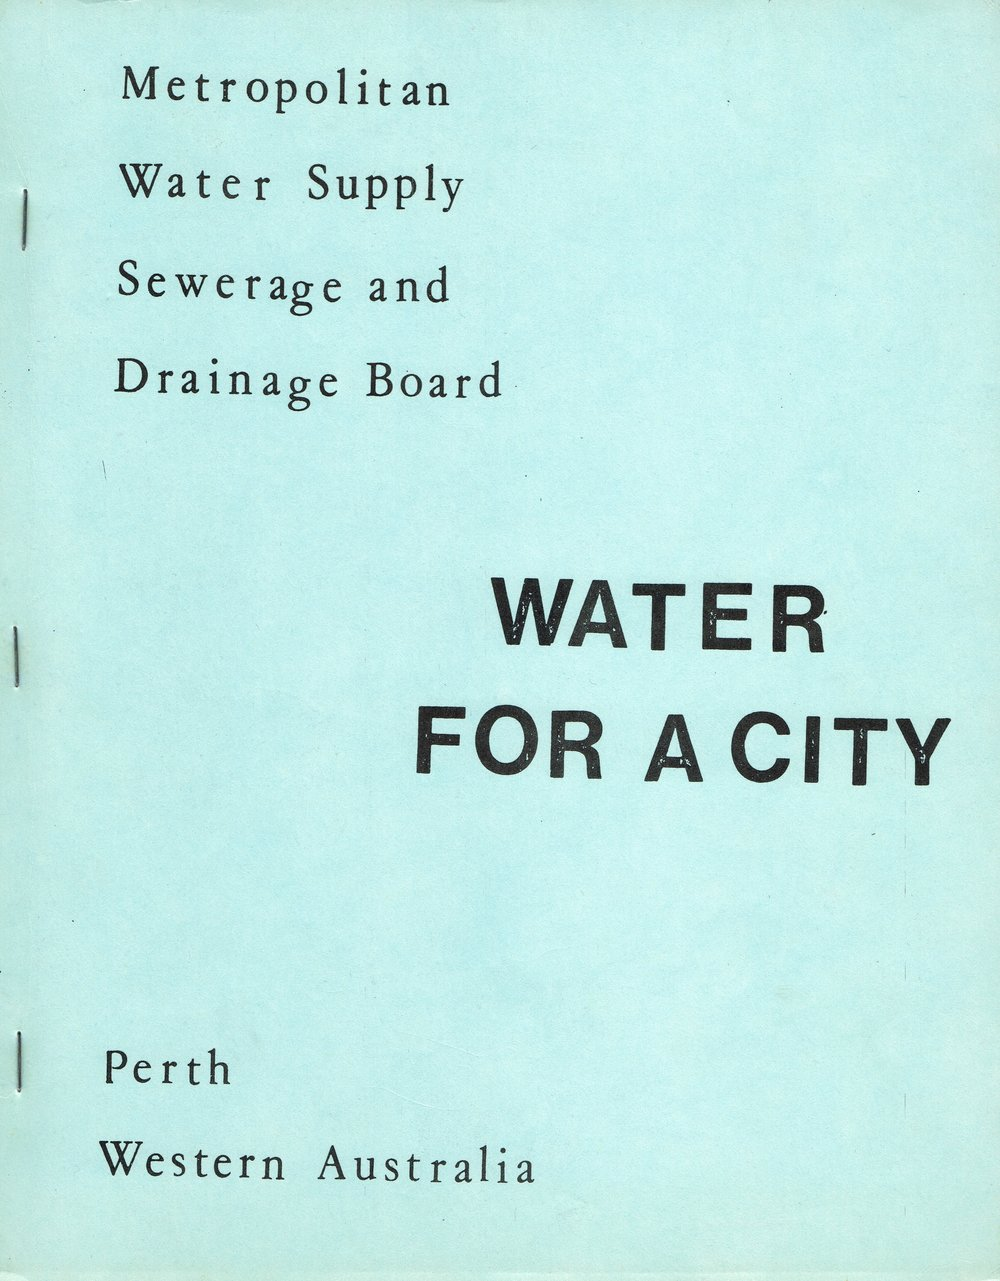 Water for a City :Perth Western Australia Metropolitan Water Supply Sewerage and Drainage Board